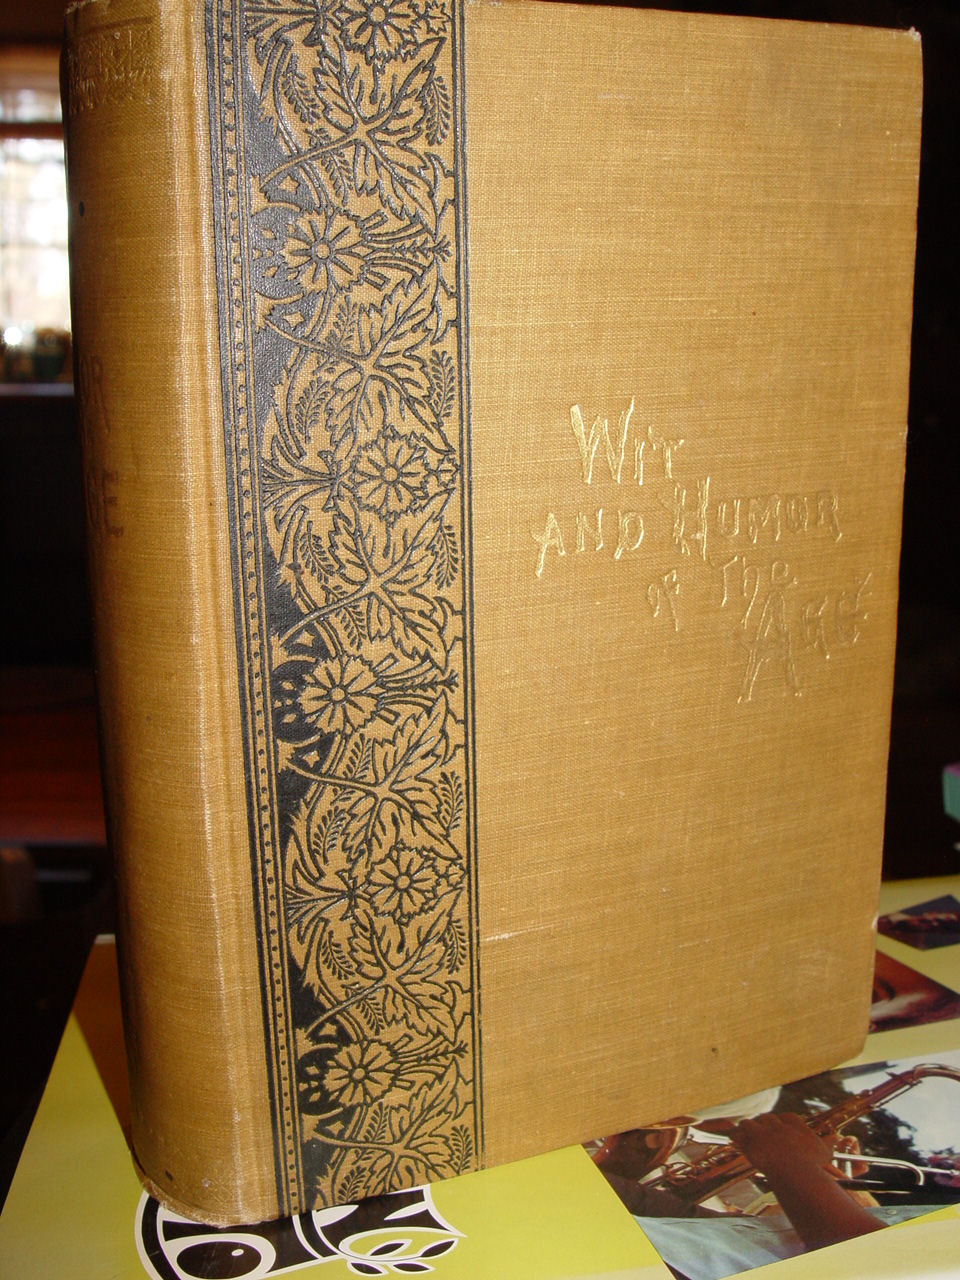 Wit And Humor Of The Age;                                         Comprising Wit, Humor, Pathos,                                         Ridicule, Satires, Dialects,                                         Puns, Conundrums, Riddles,                                         Charades, Jokes And Magic by                                         Mark Twain 1883